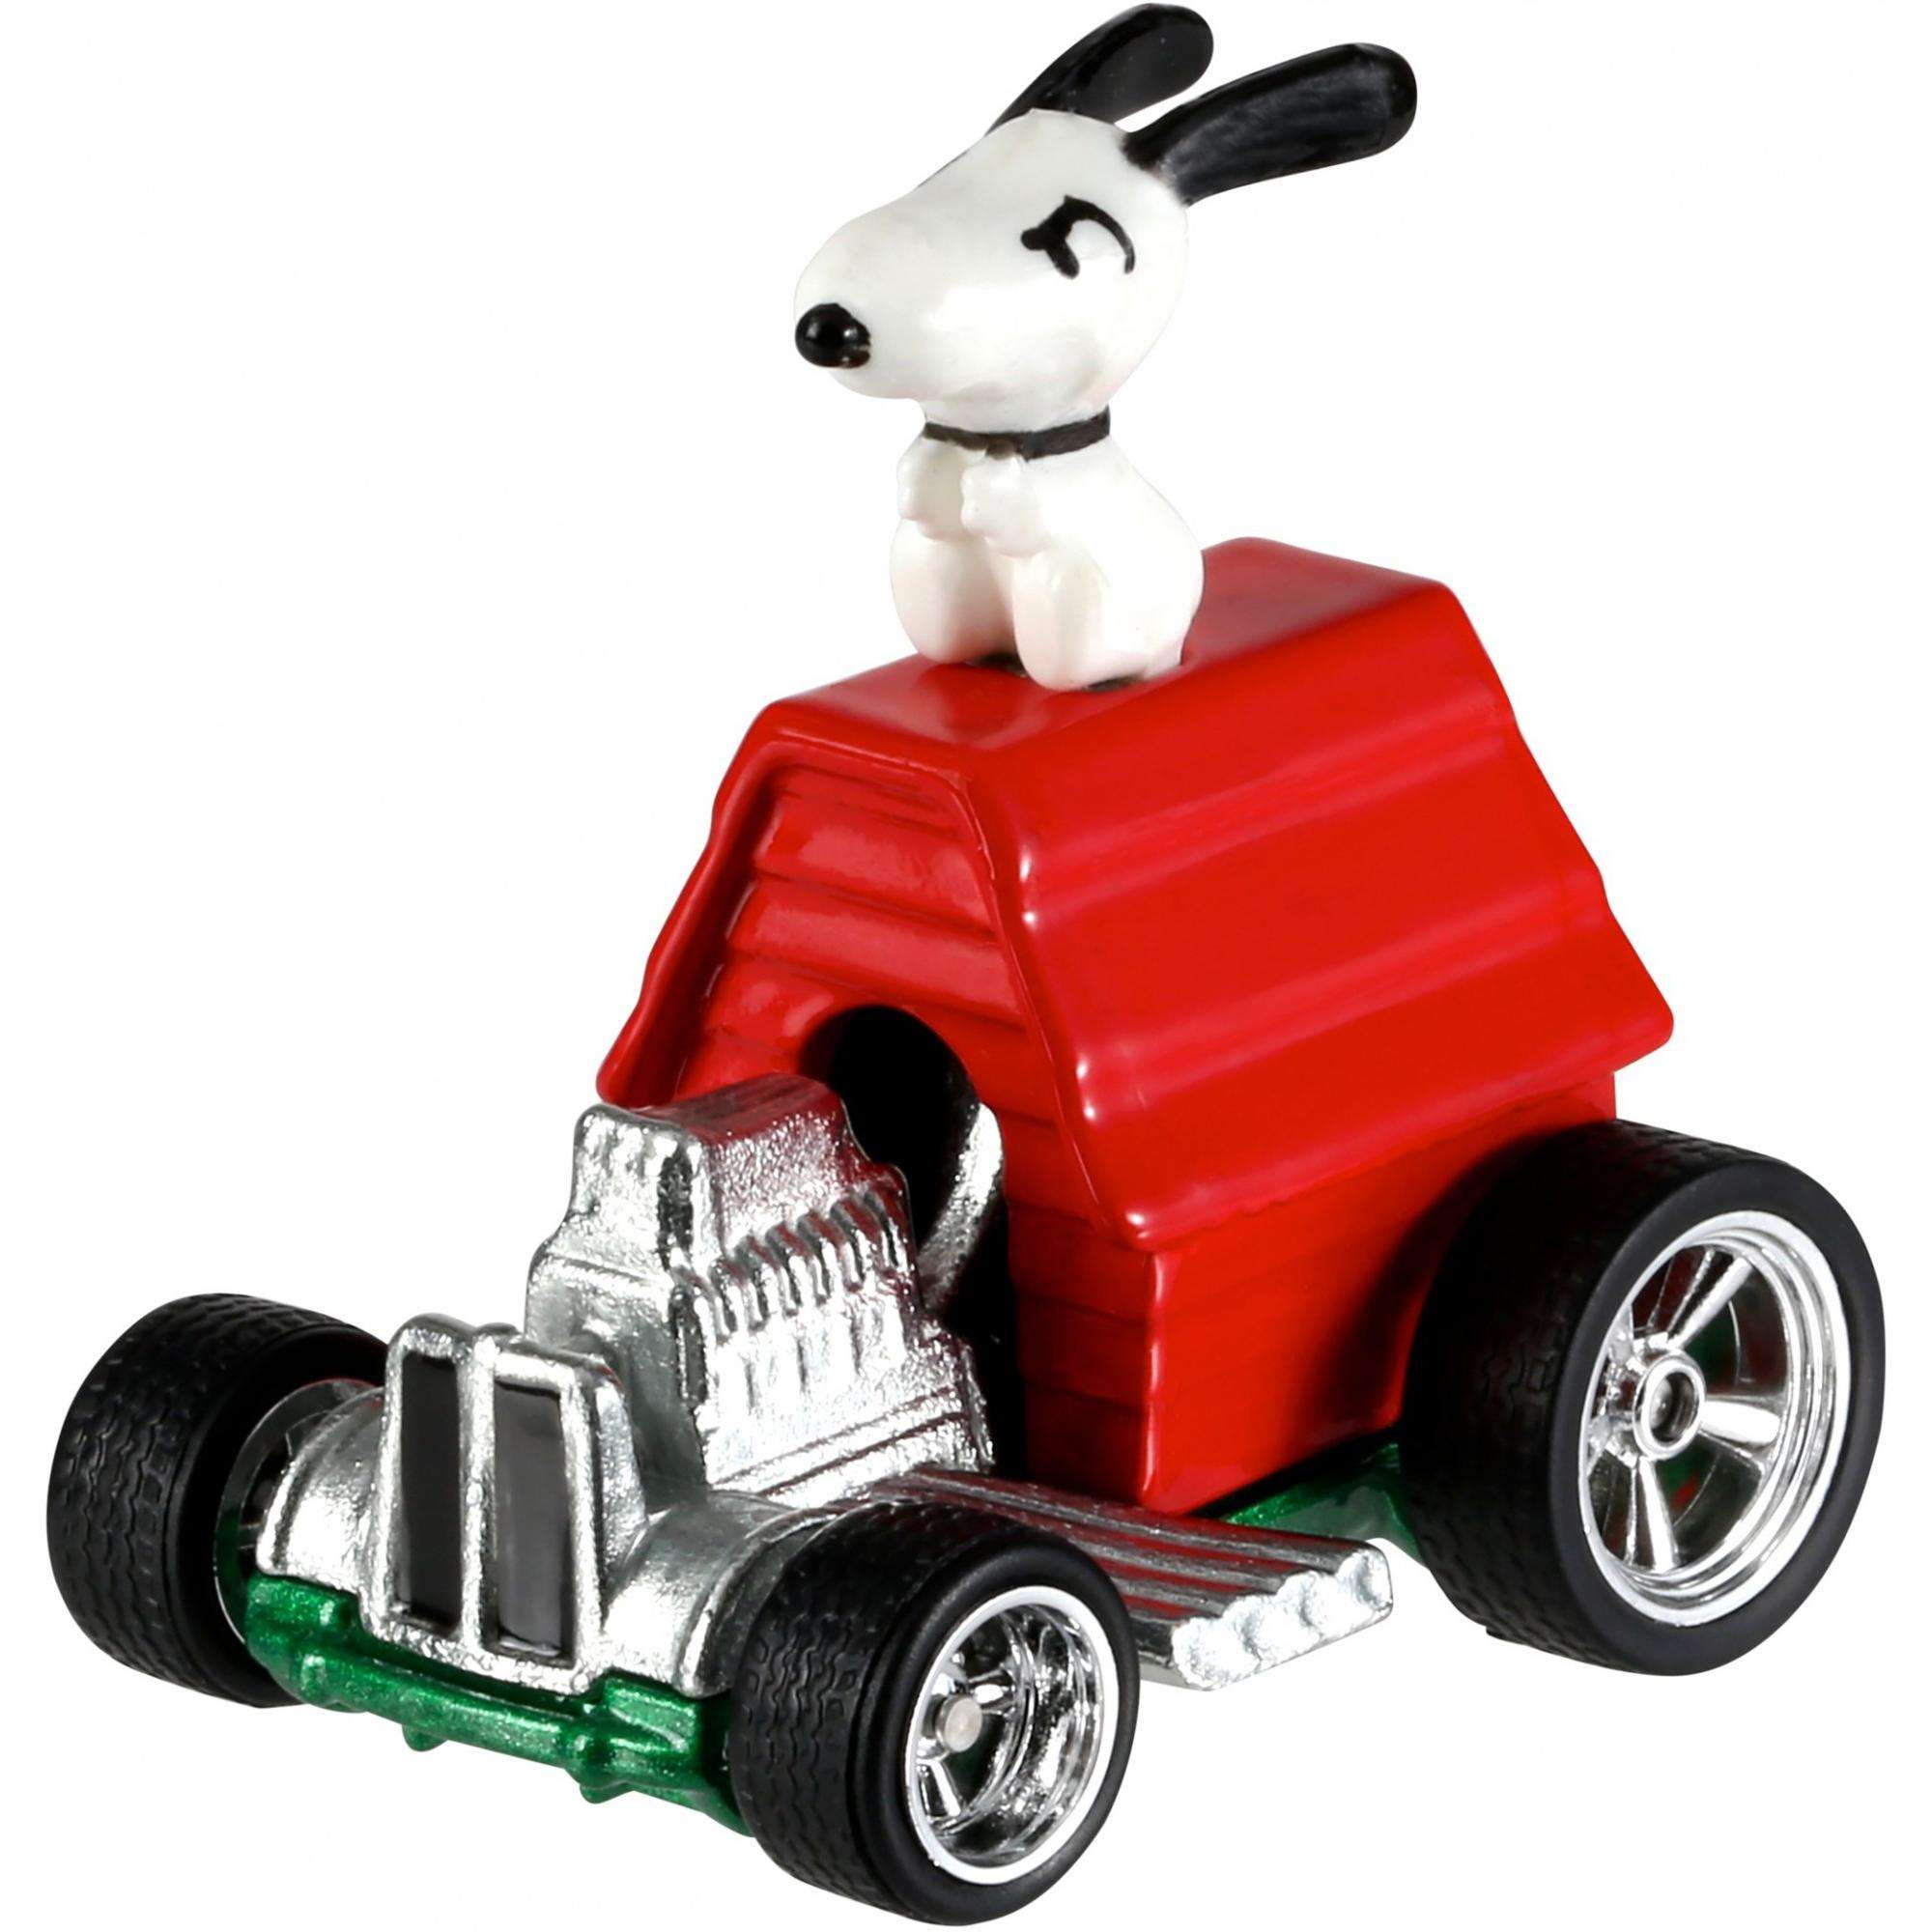 Hot Wheels Snoopy Vehicle by Mattel